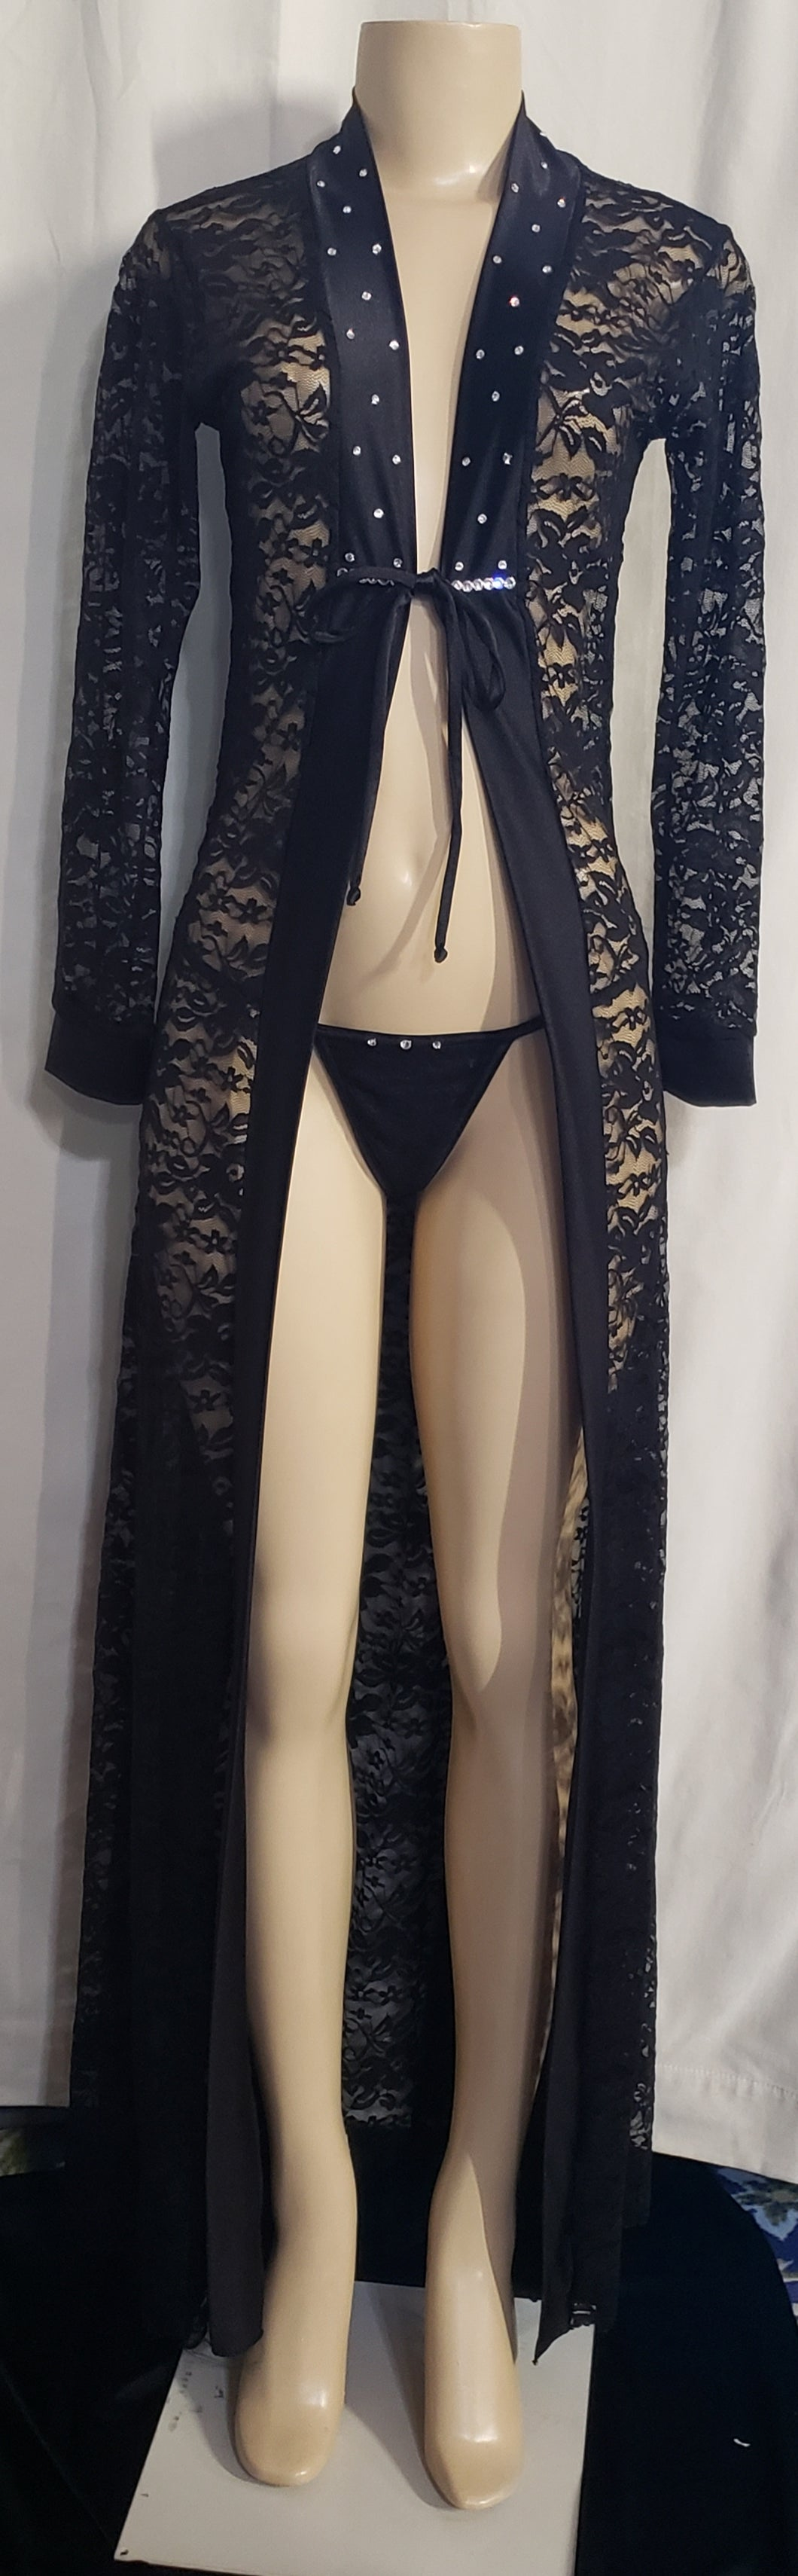 Long Lace Robe with G string Embellish with Rhinestones - [collection] - Honeybunnies.com